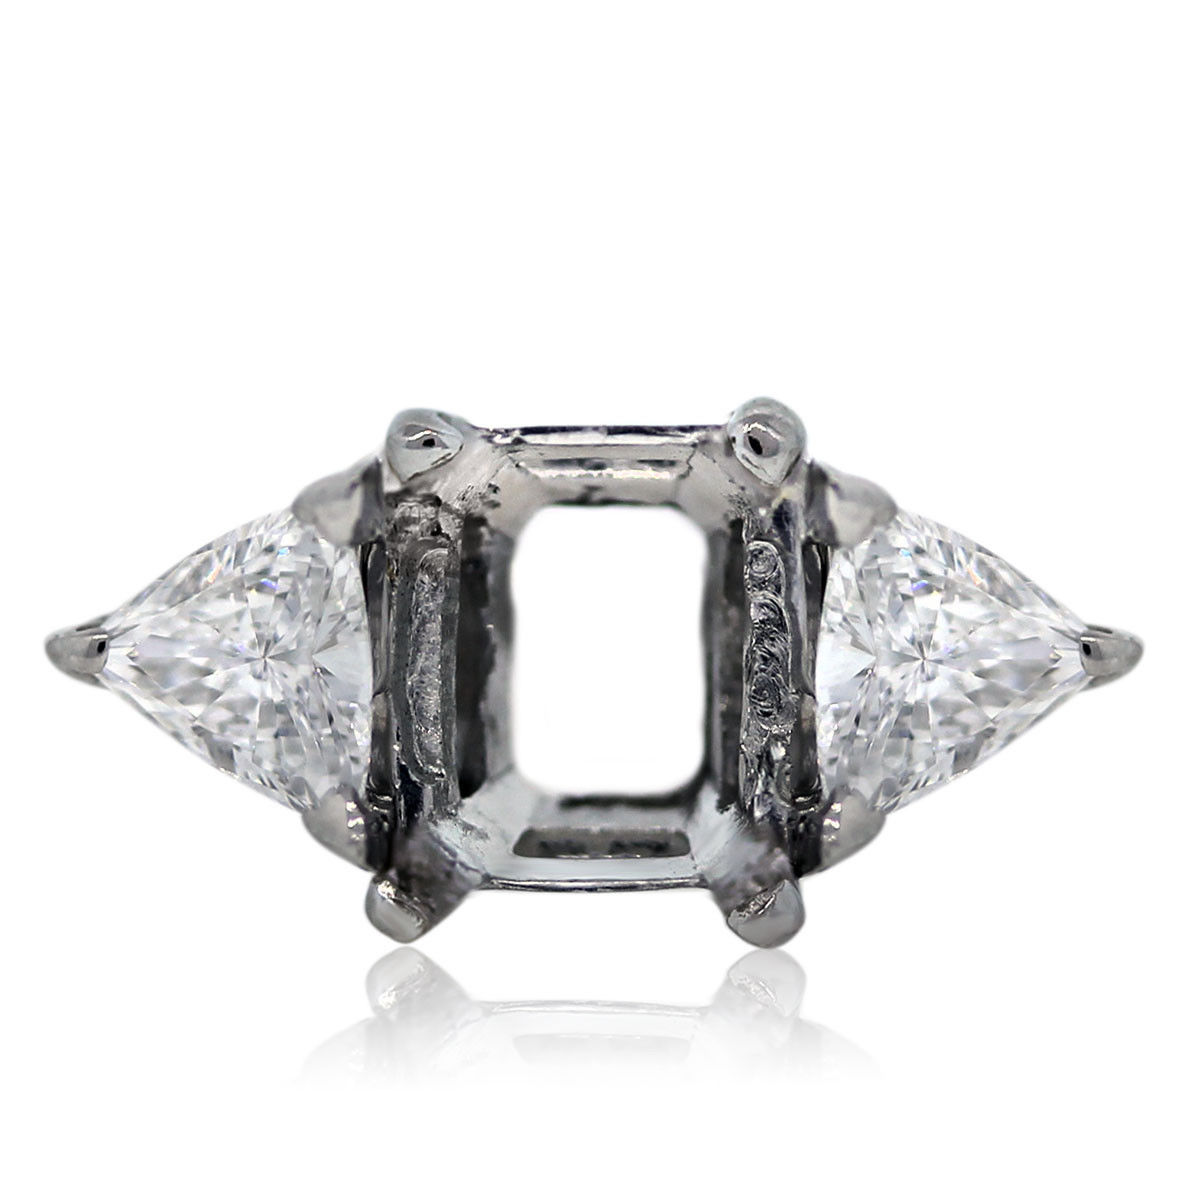 You are viewing this Platinum Mounting with Two Trillion Cut Accent Stones!